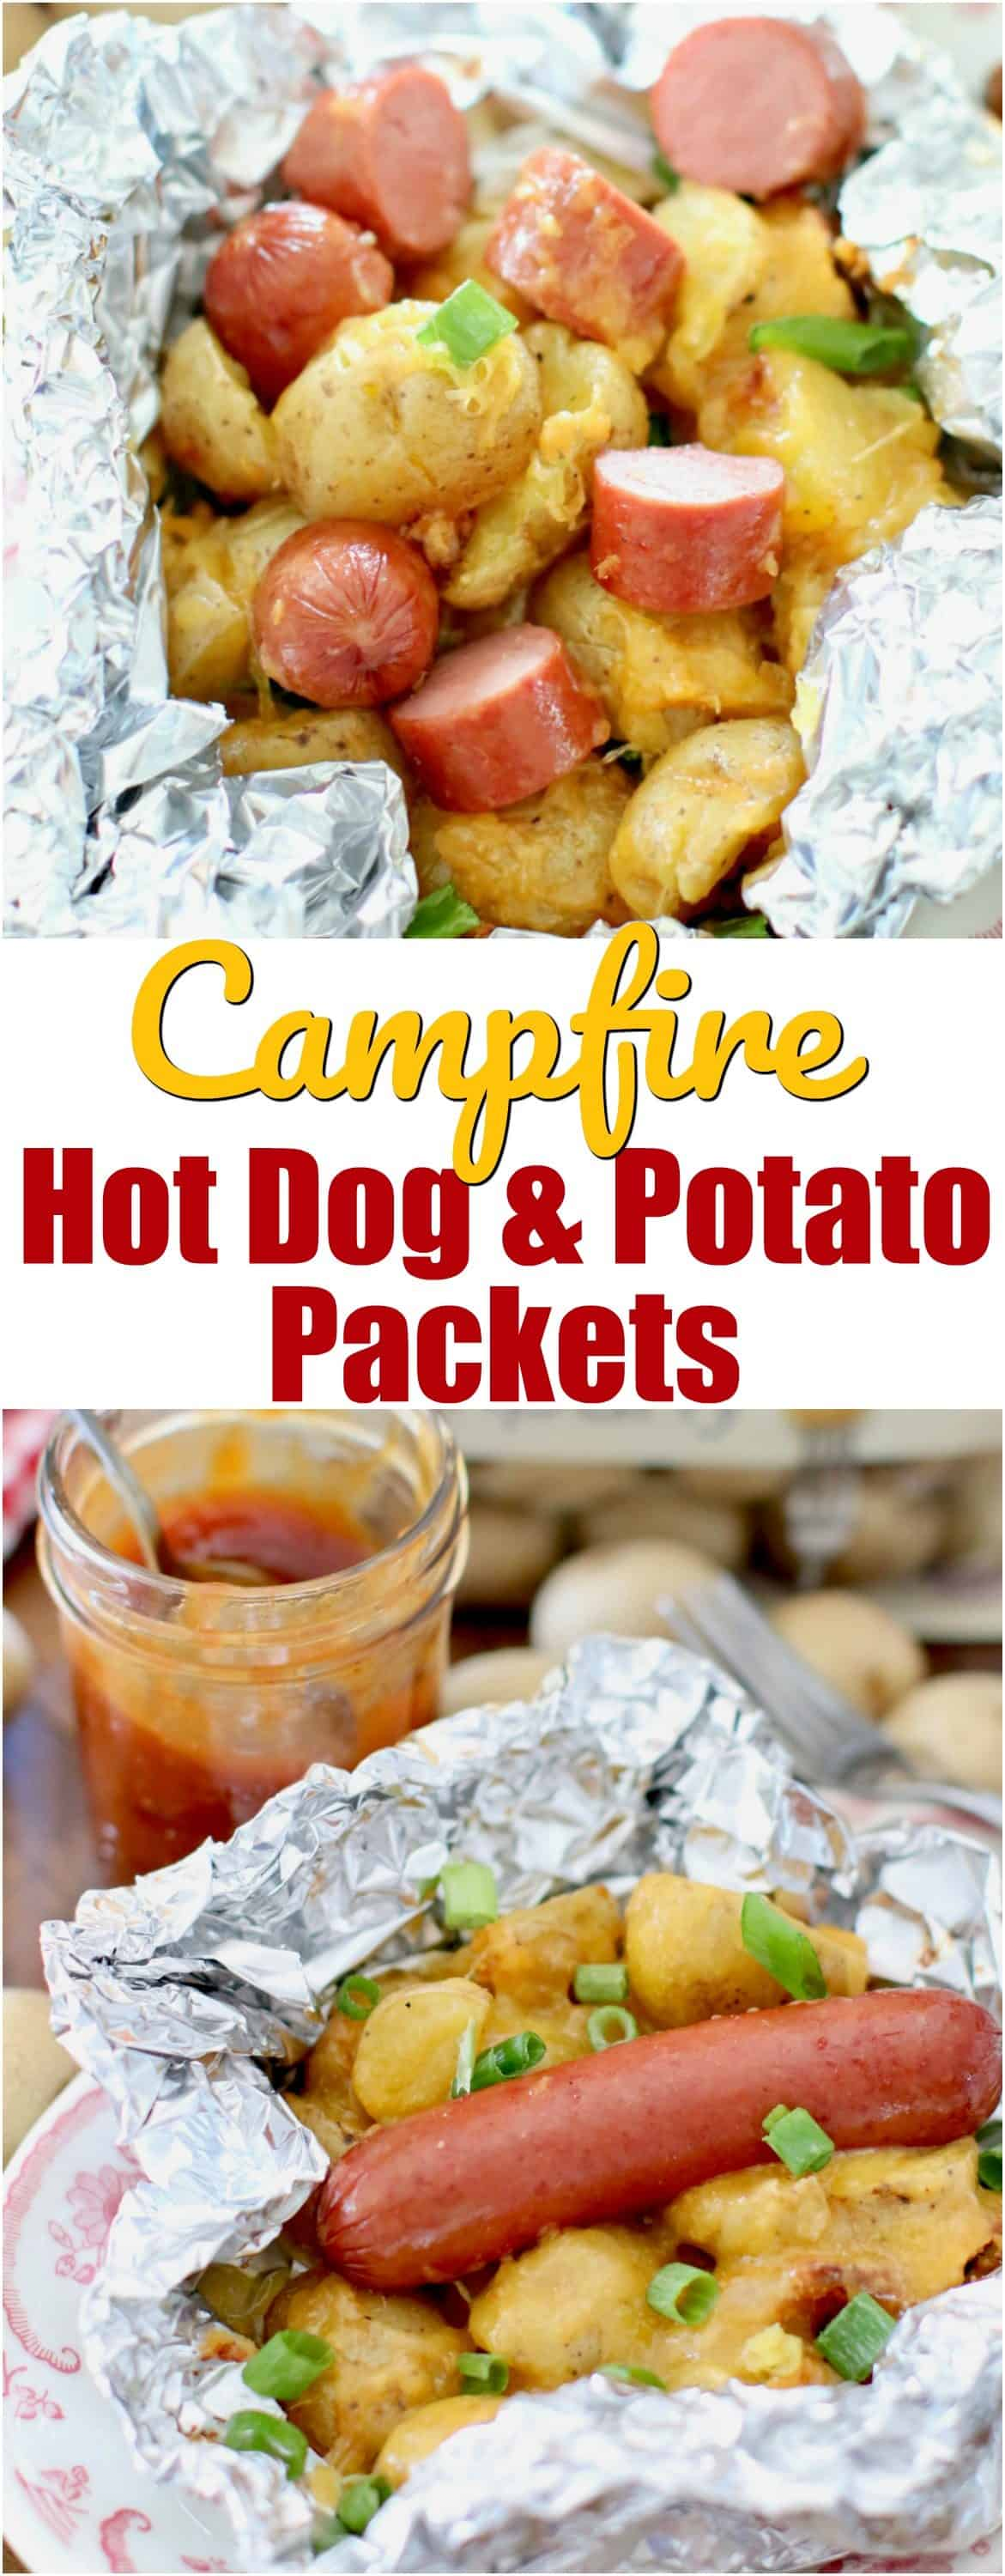 These Campfire Hot Dog Potato Packets are perfect for grilling! Hot dogs, potatoes, cheddar cheese, BBQ sauce and seasonings cooked in foil!